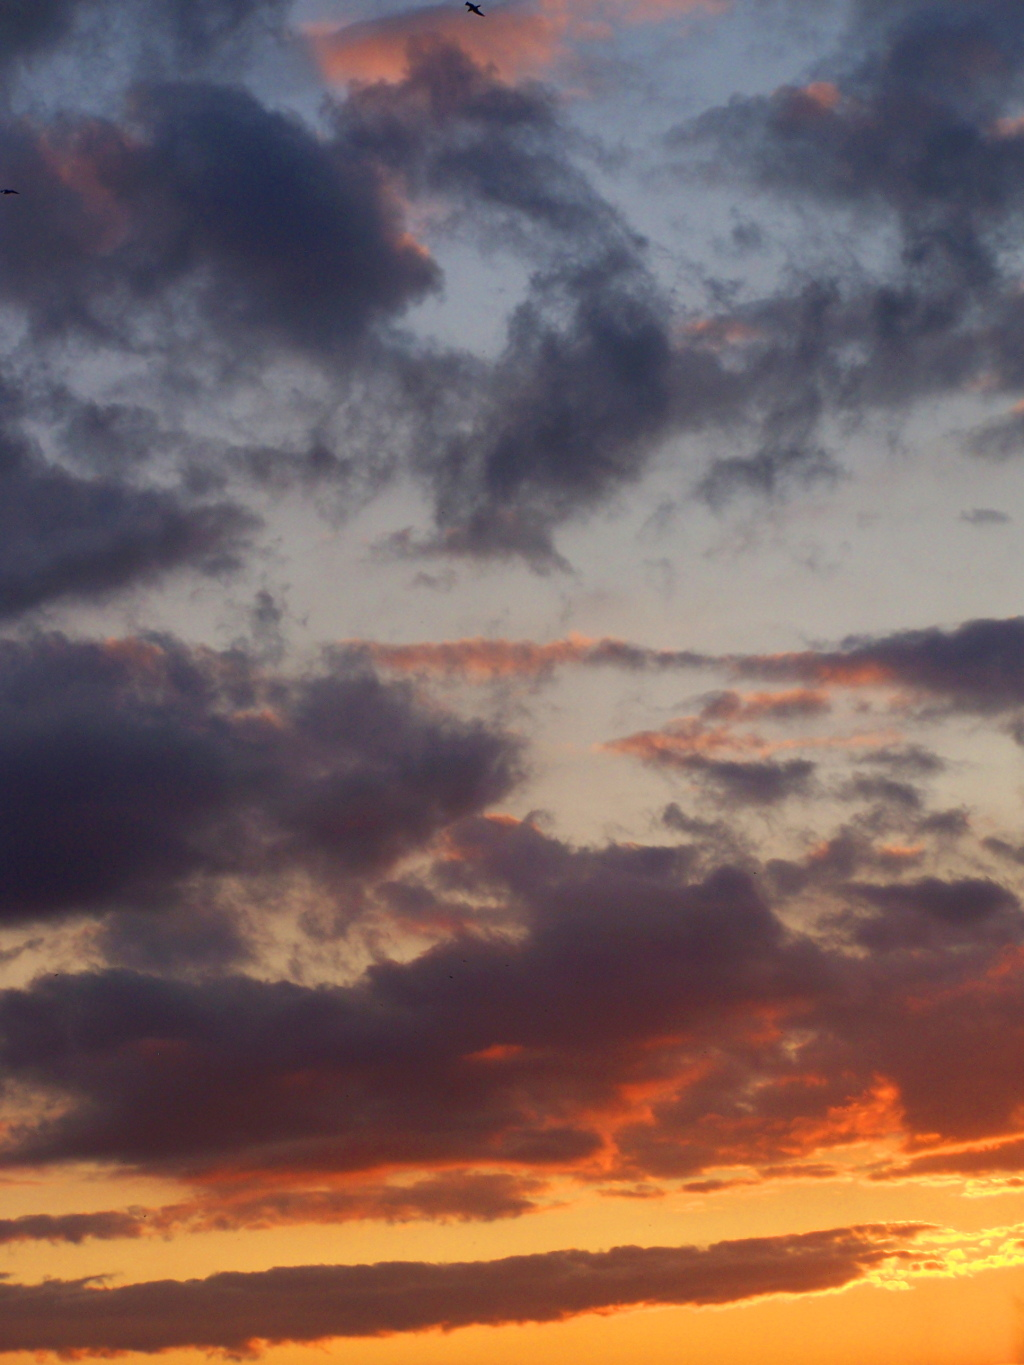 Photo: Sunset's Clouds